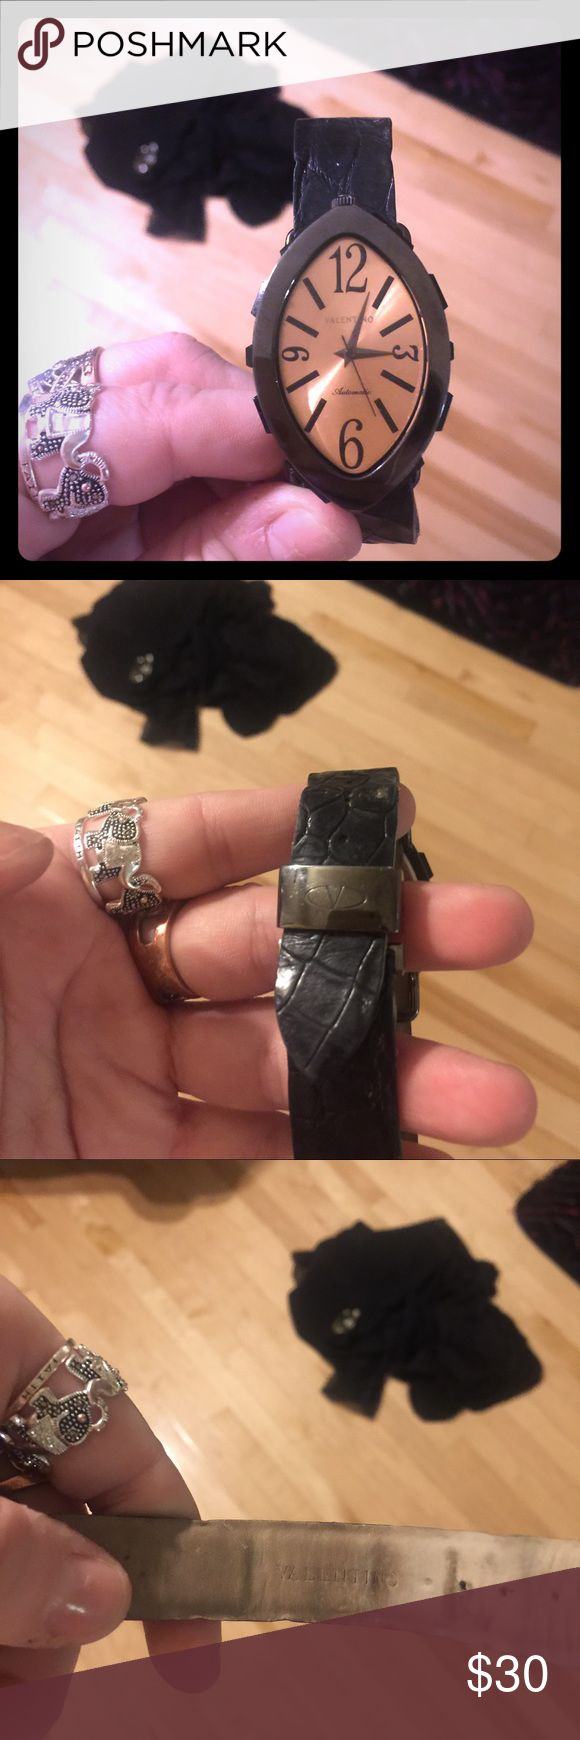 Traded-Shelly Valentino watch needs batteries-used Accessories Watches